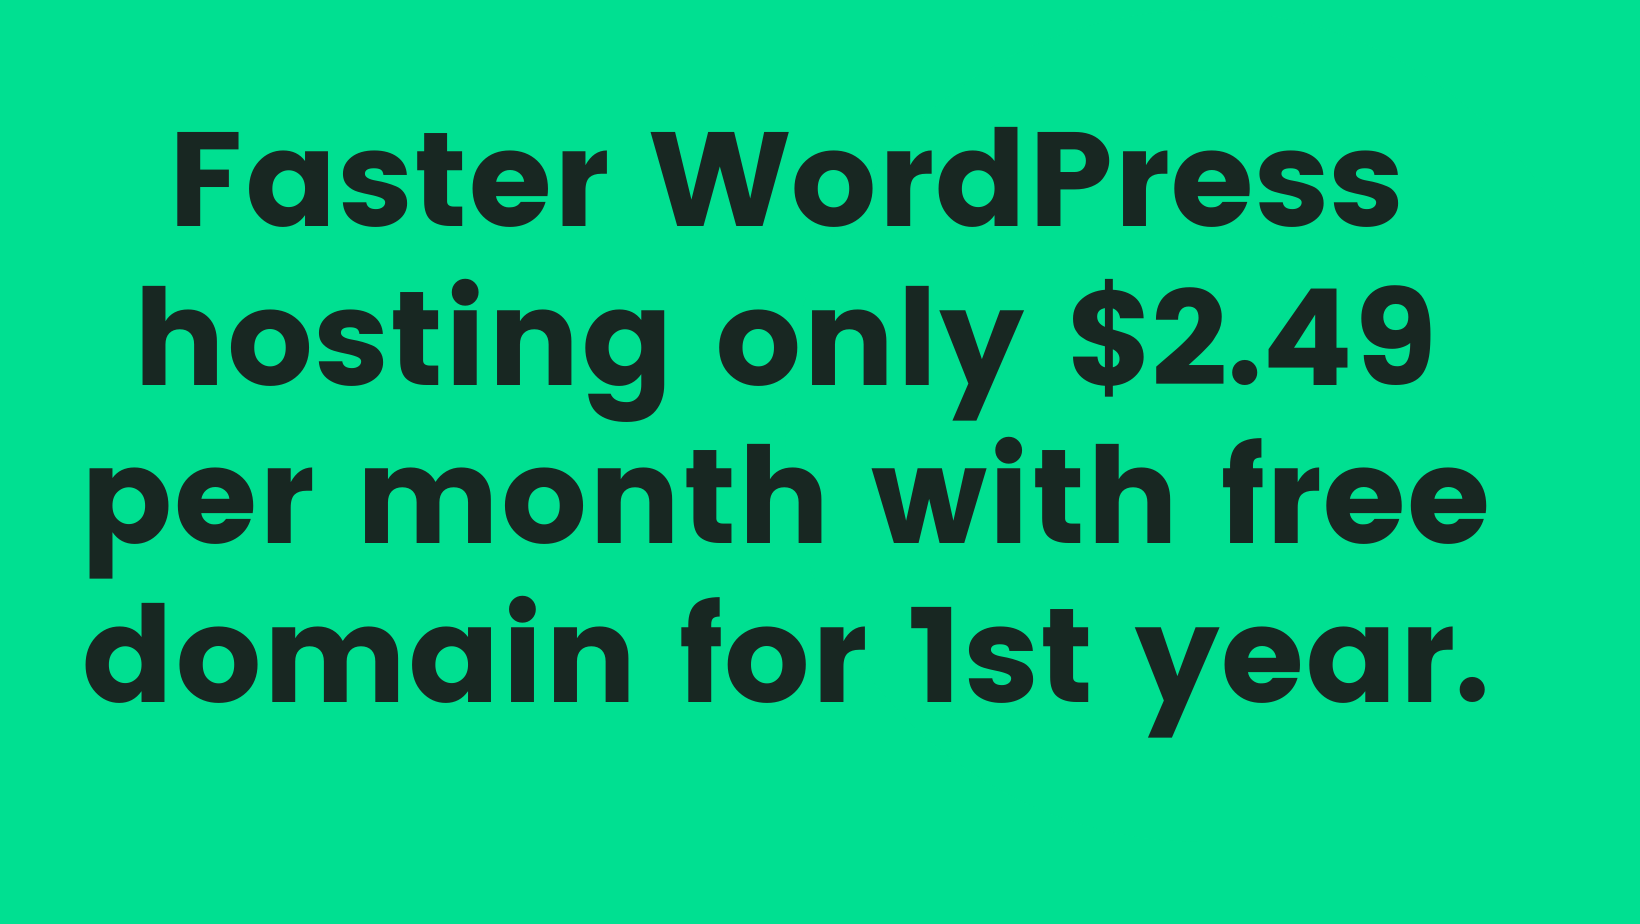 Faster WordPress hosting only $2.49 per month with free domain for 1st year.